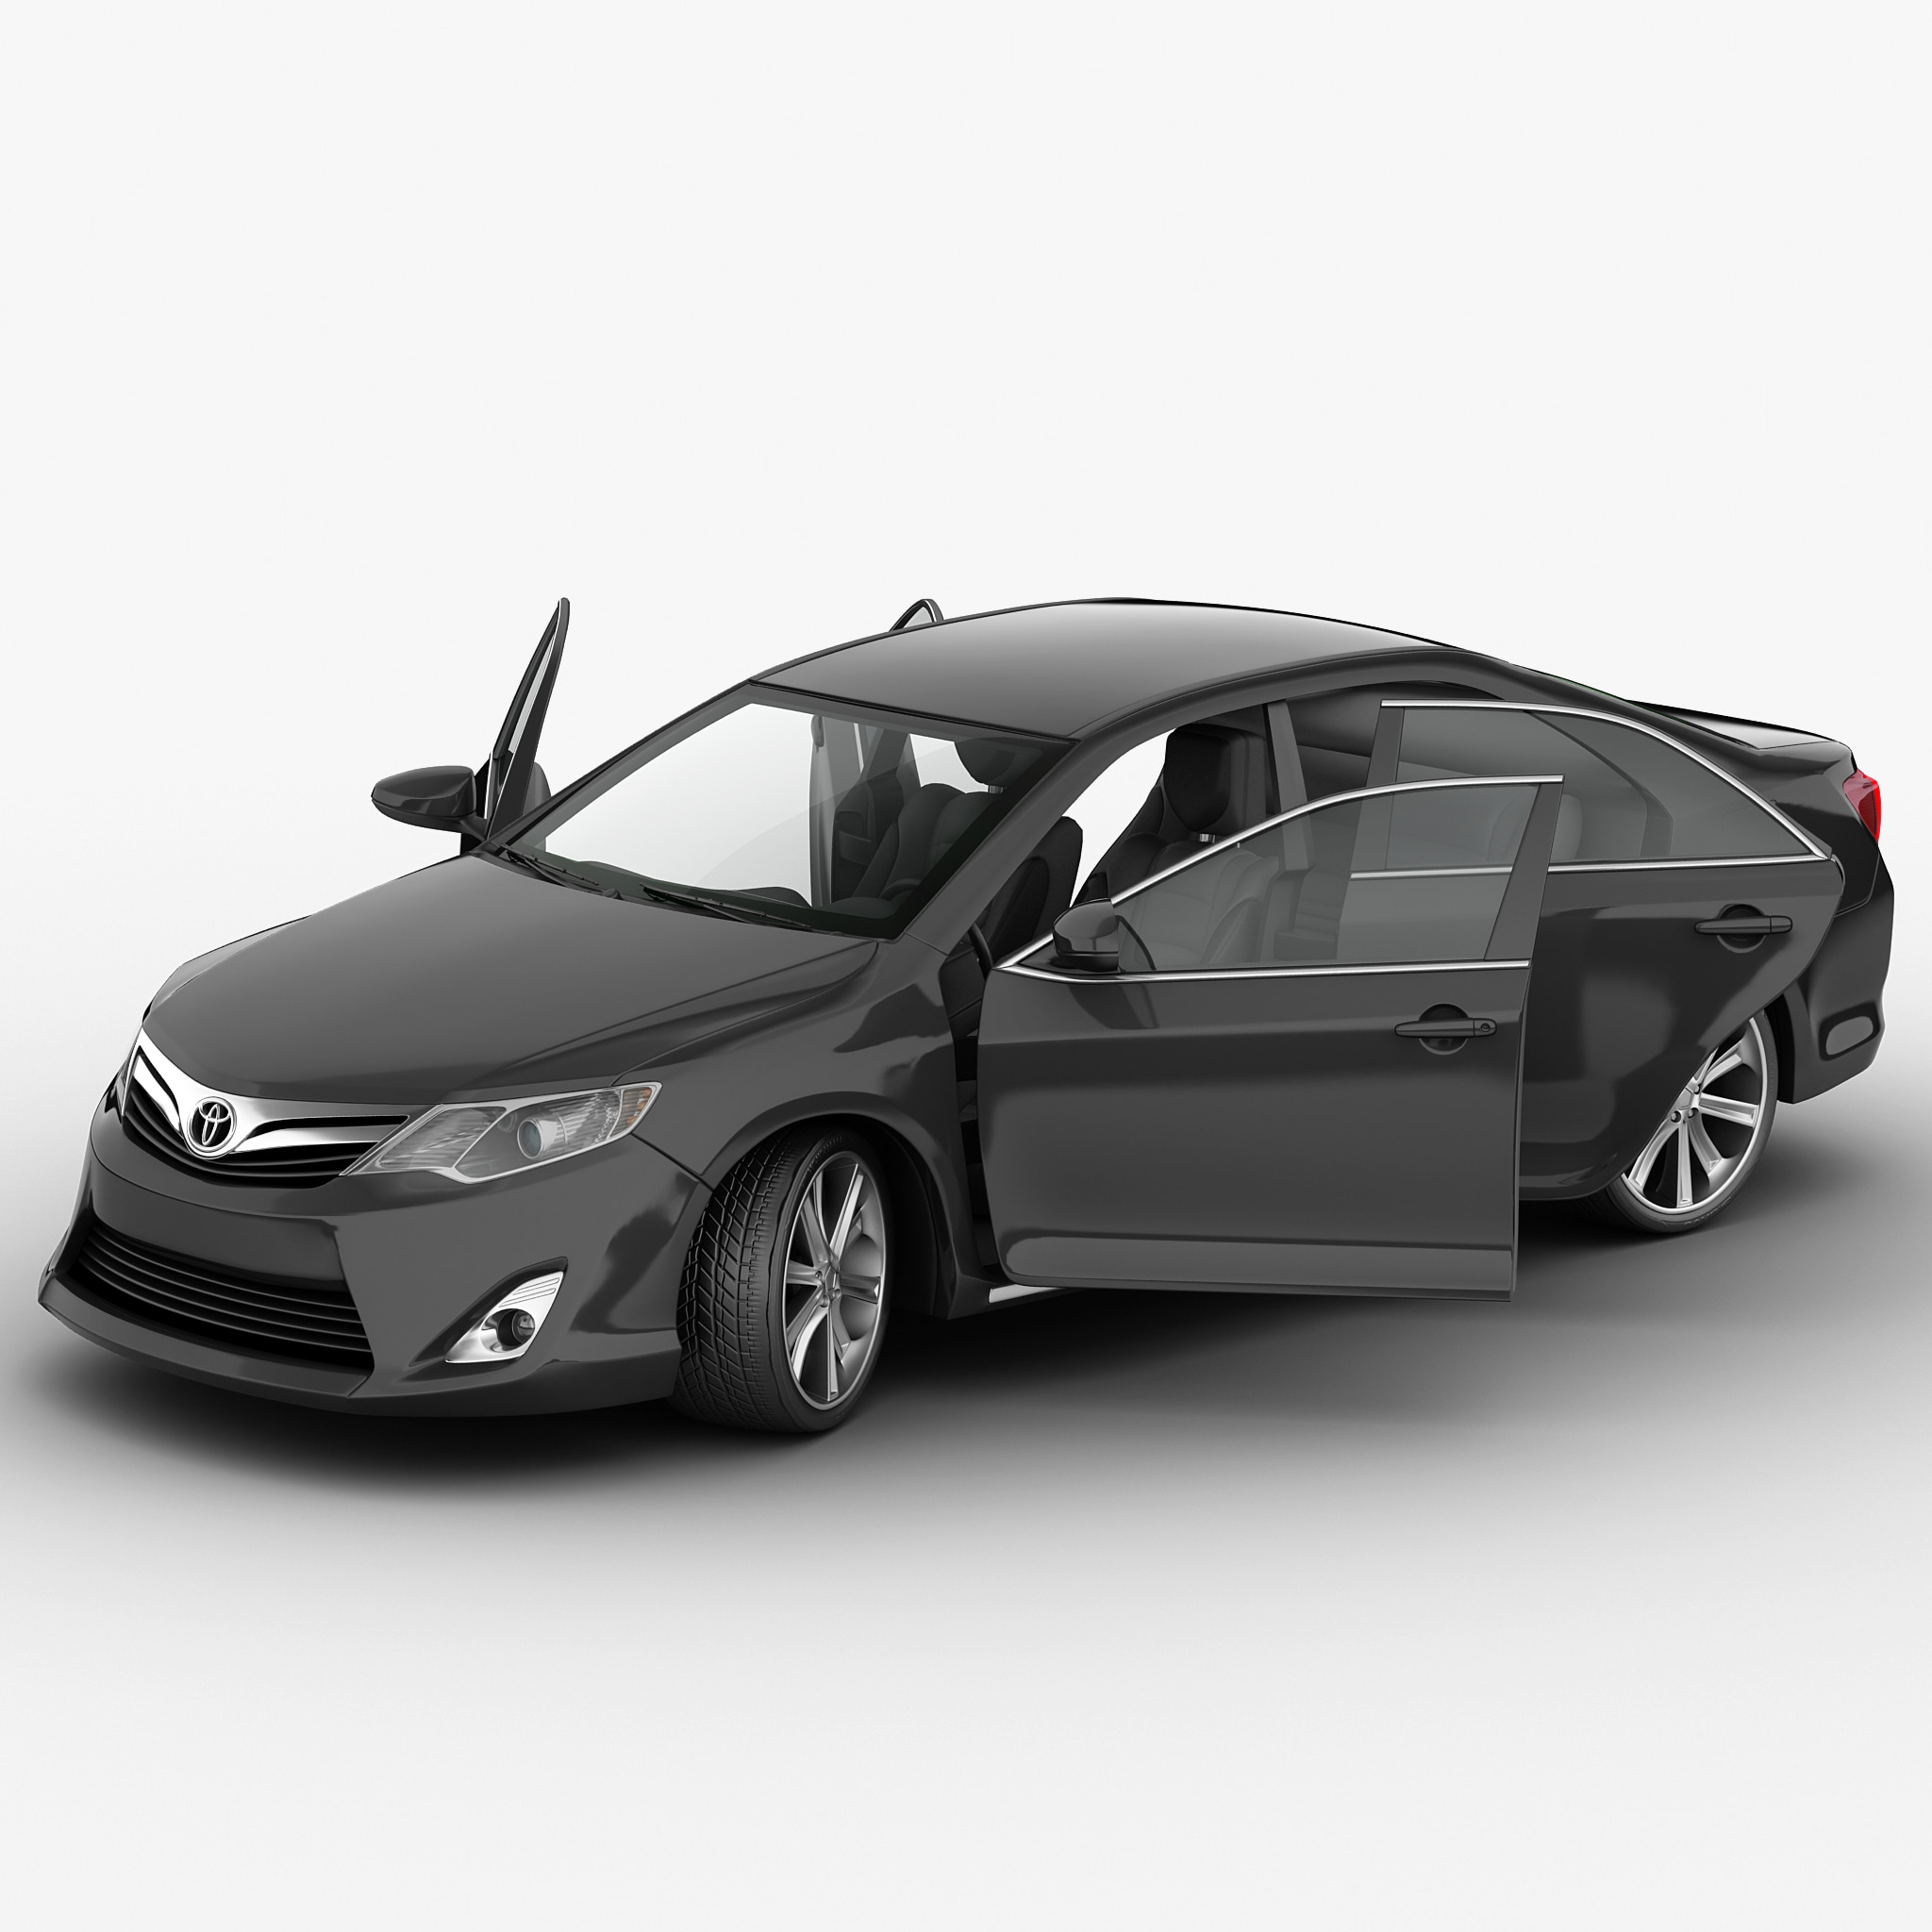 Toyota Camry 2012 Rigged